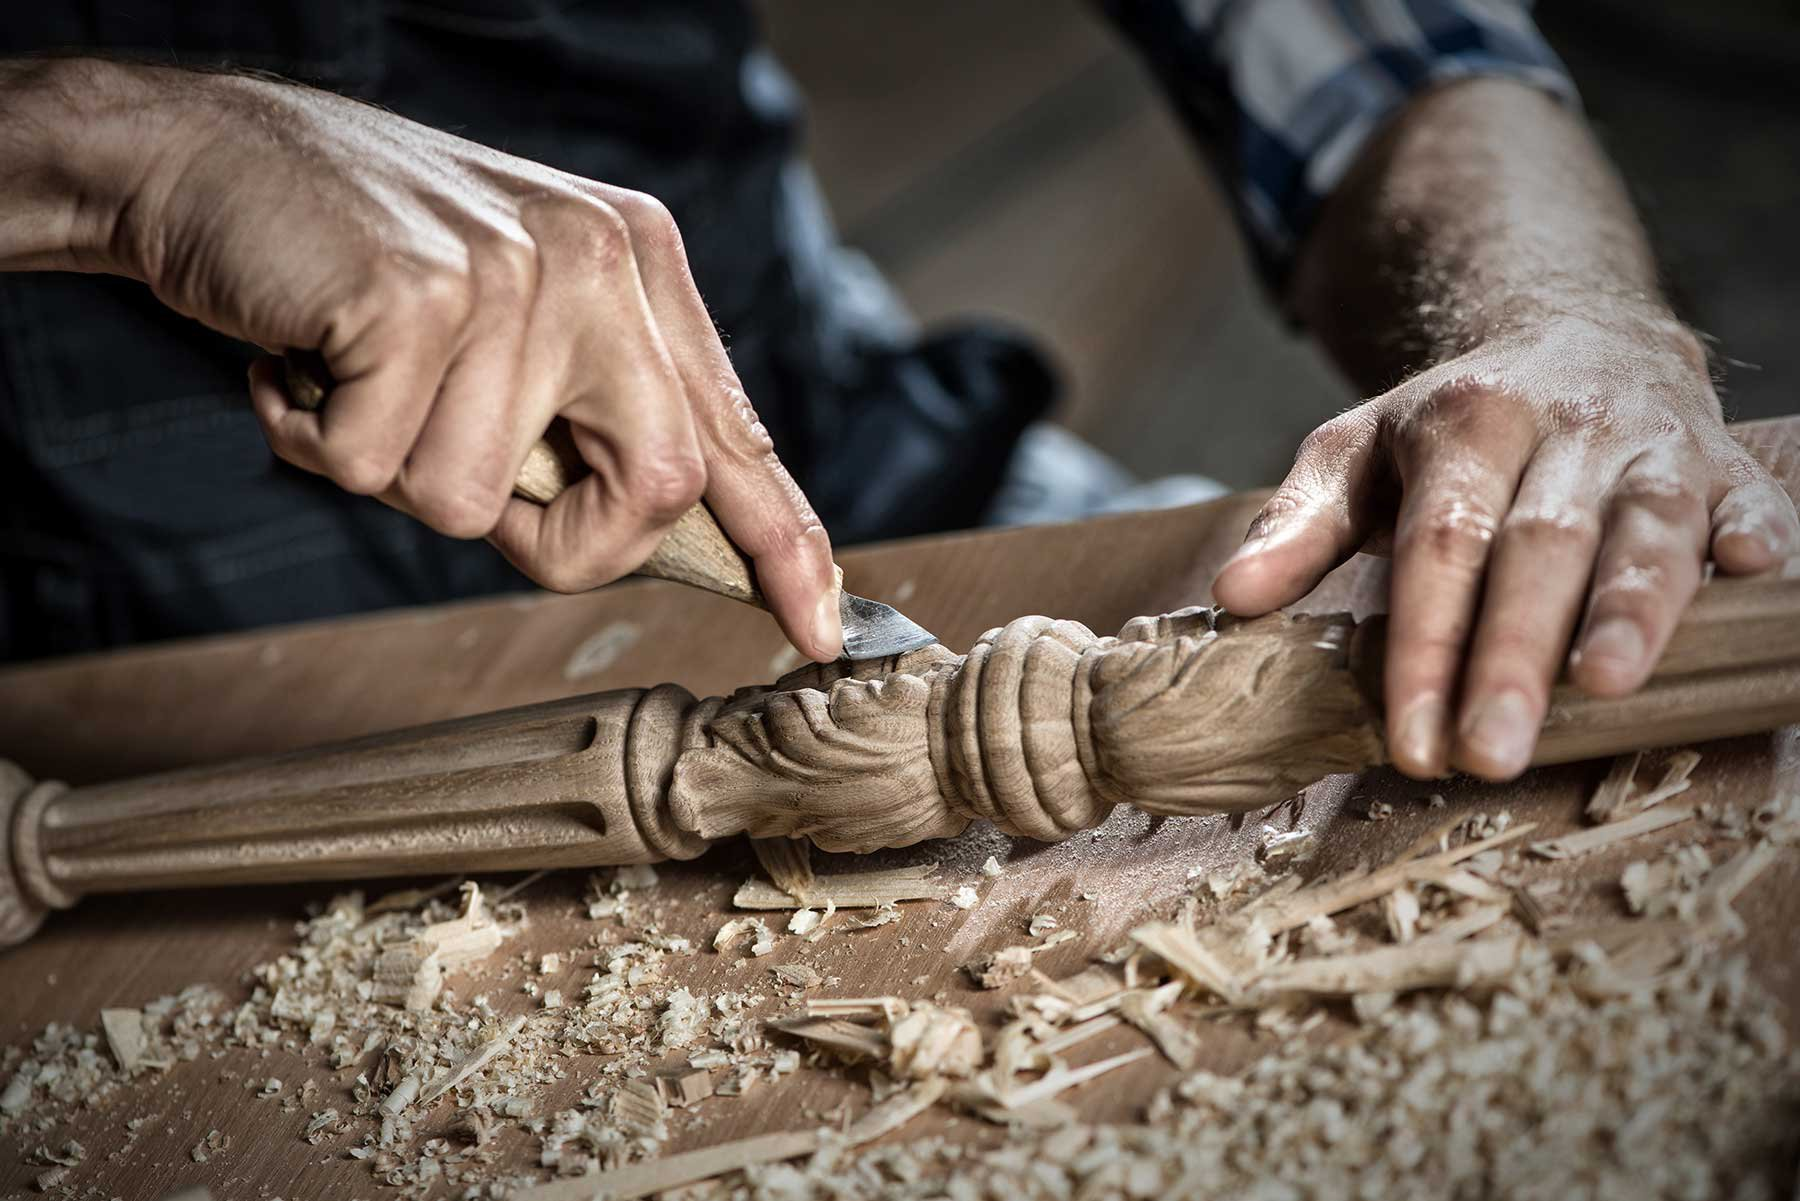 italian_craftsmanship_furniture_tradition_umbria